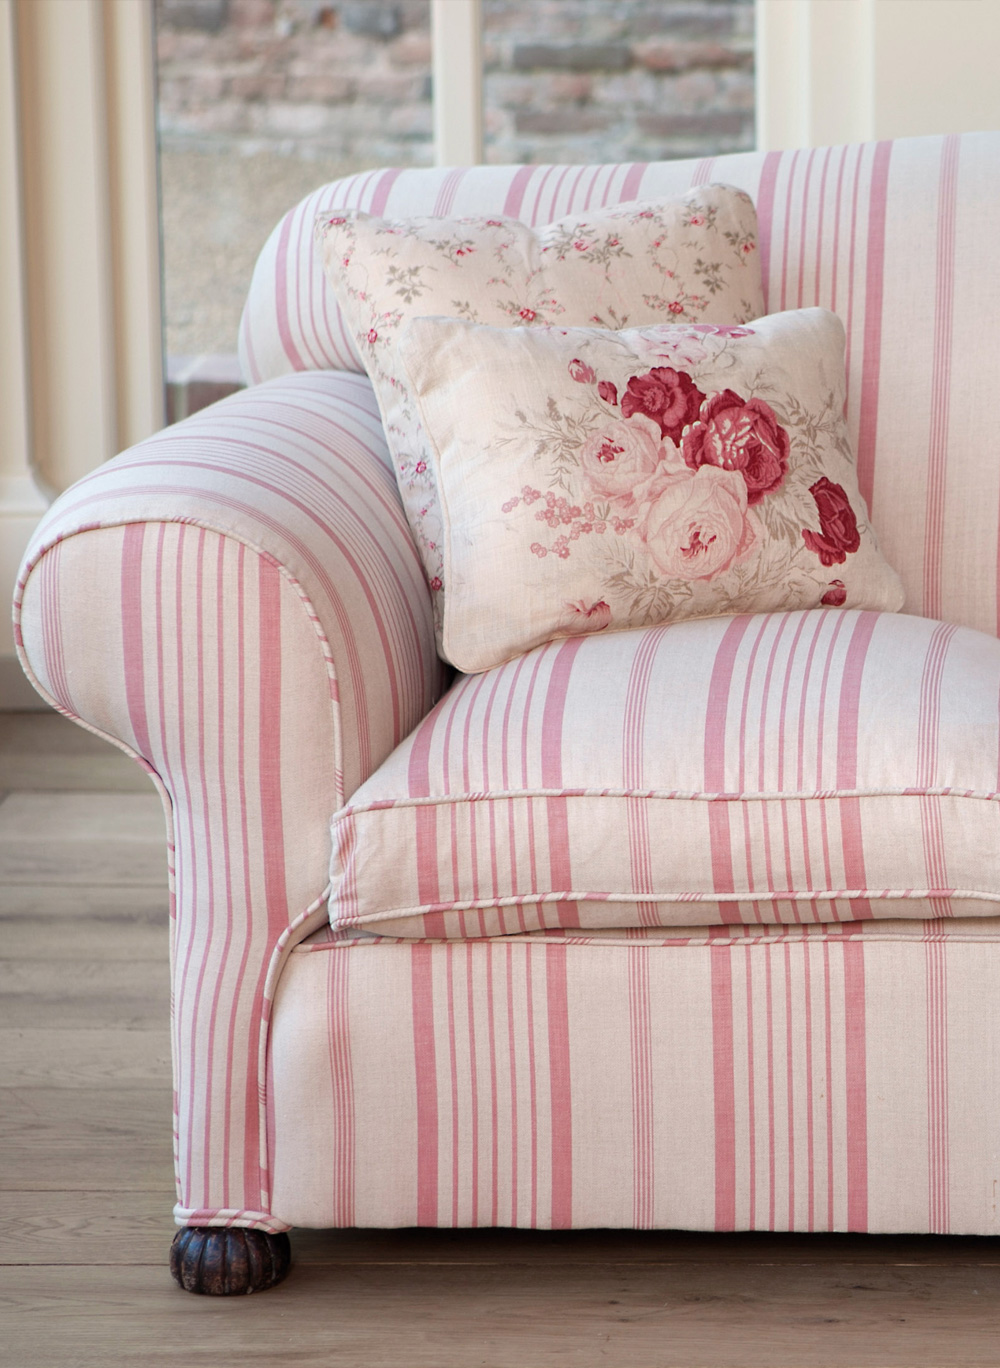 Pink Ticking Sofa with roses and sprig cushions  Kate Forman